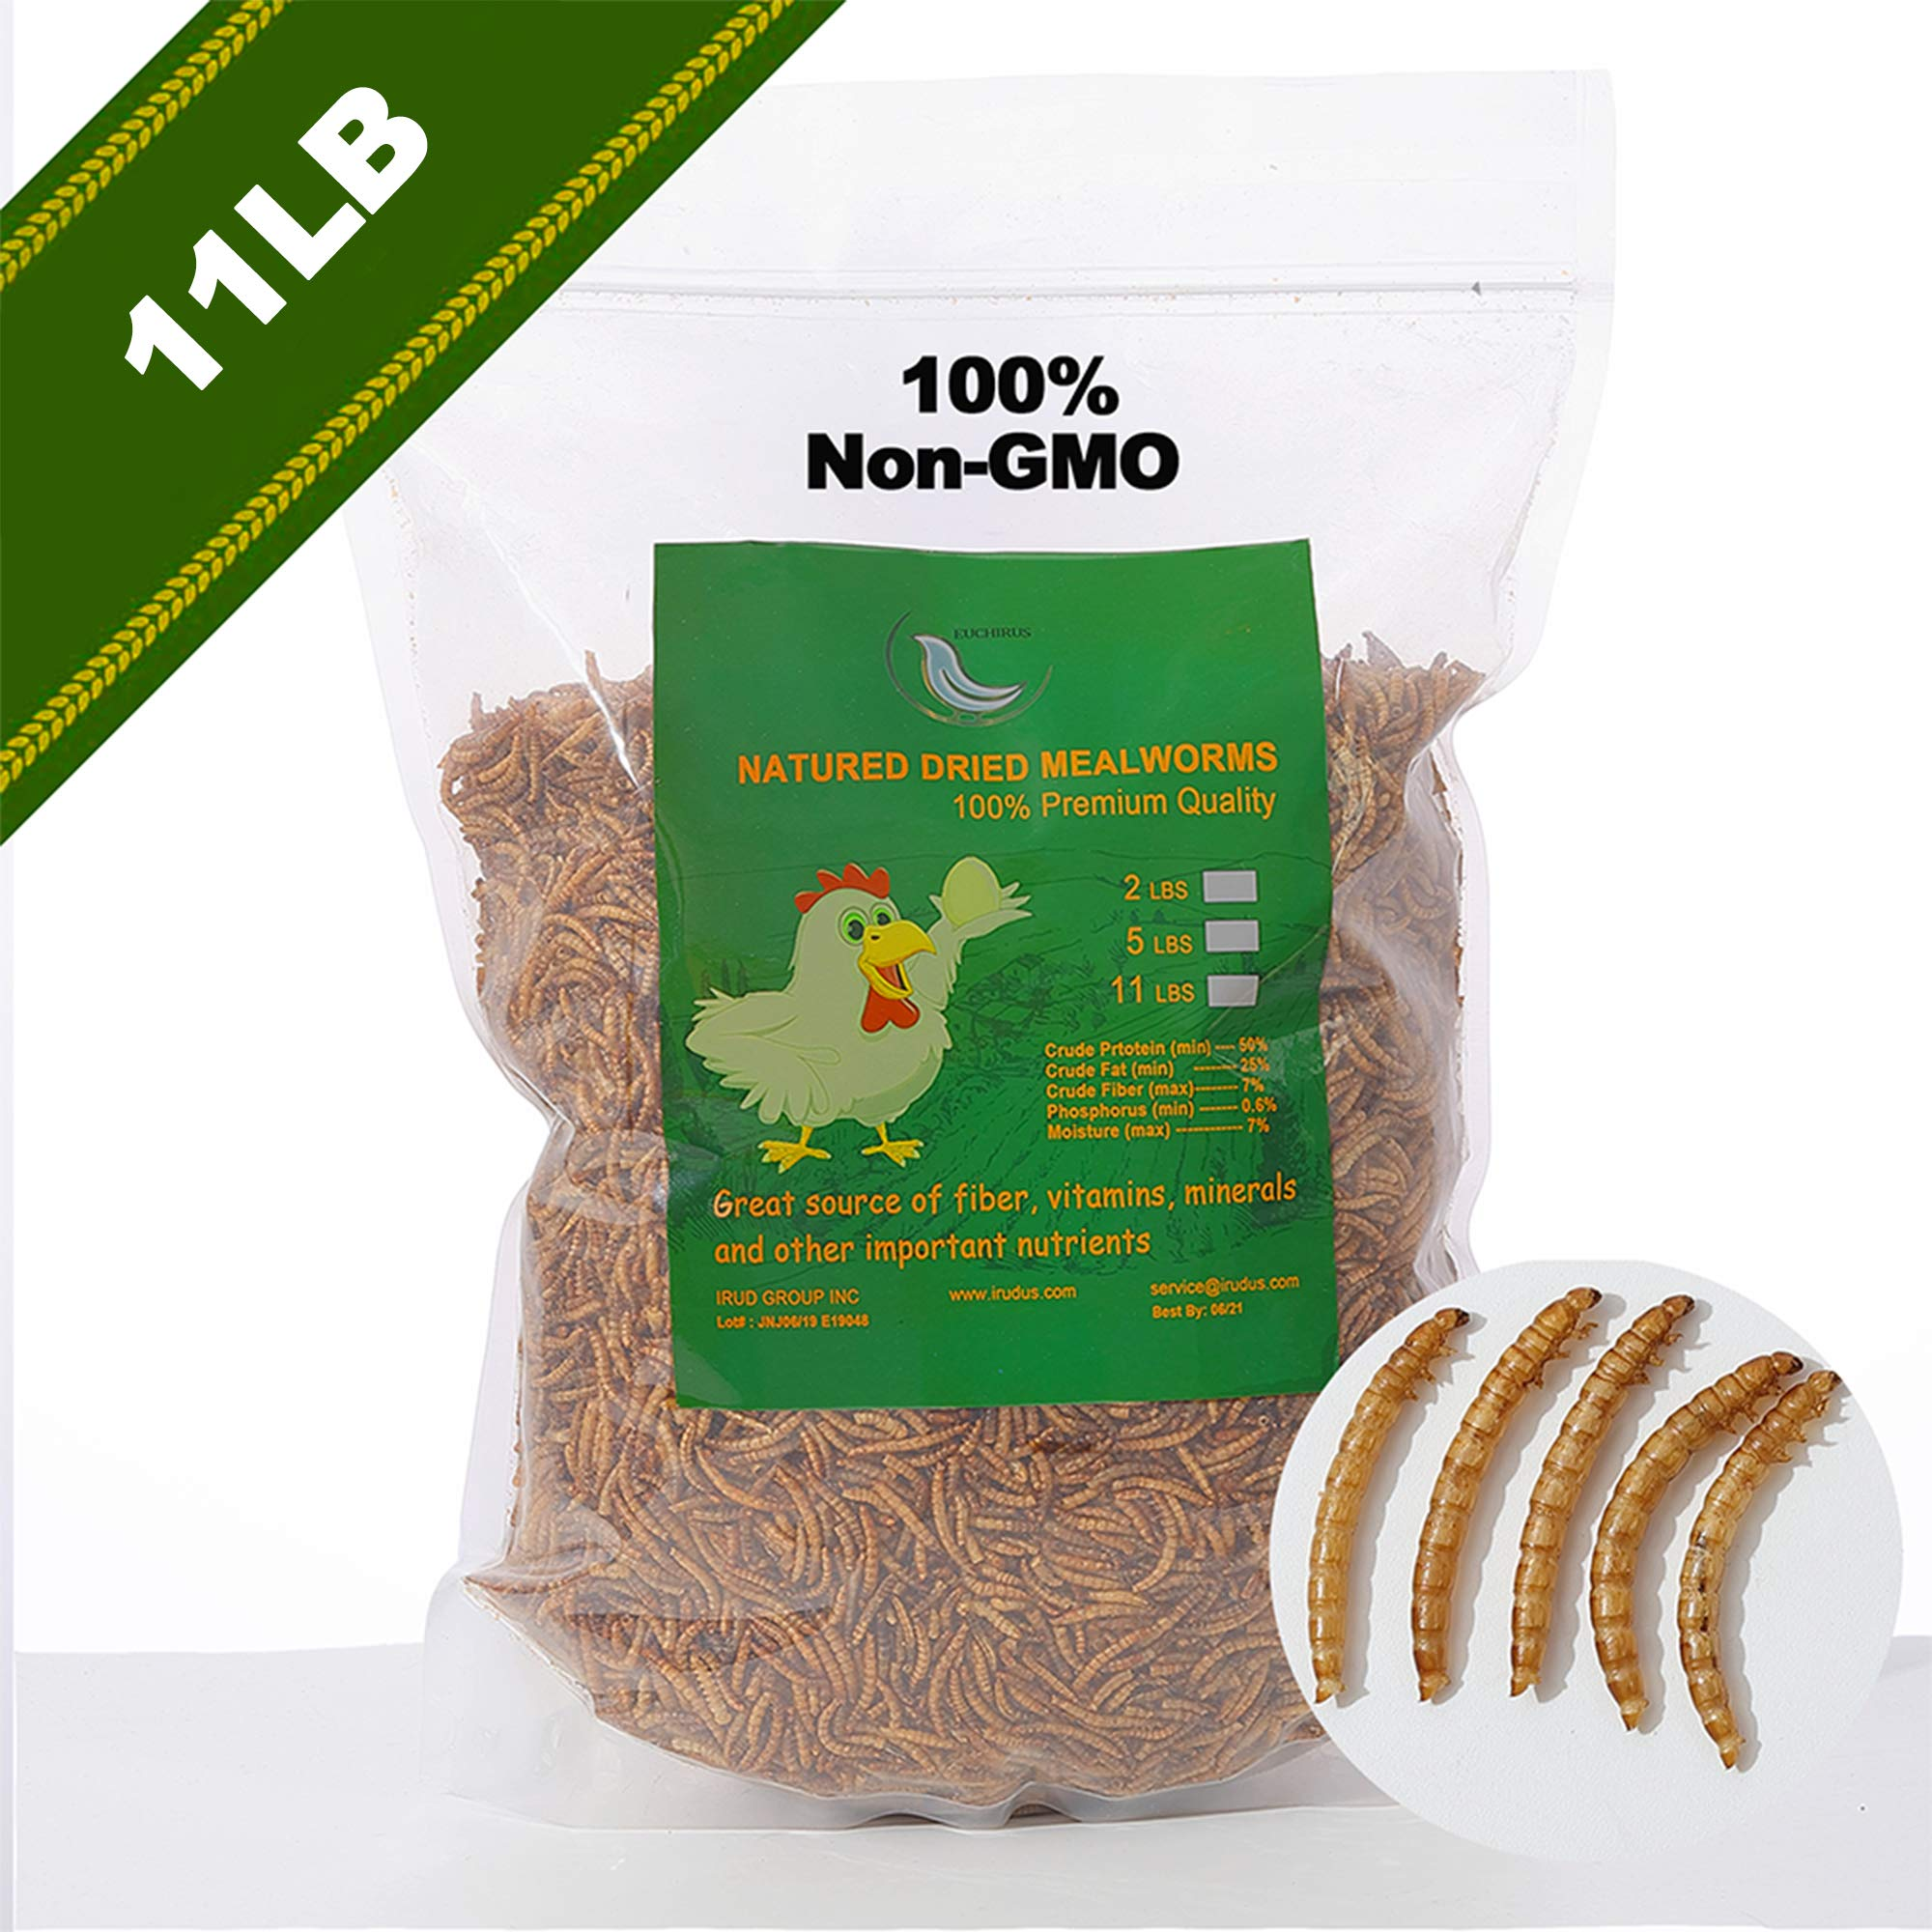 WAMSOFT Non-GMO Dried Mealworms - Treats for Birds Chickens Hedgehog Hamster Fish Reptile Turtles ... (11LB) by WAMSOFT